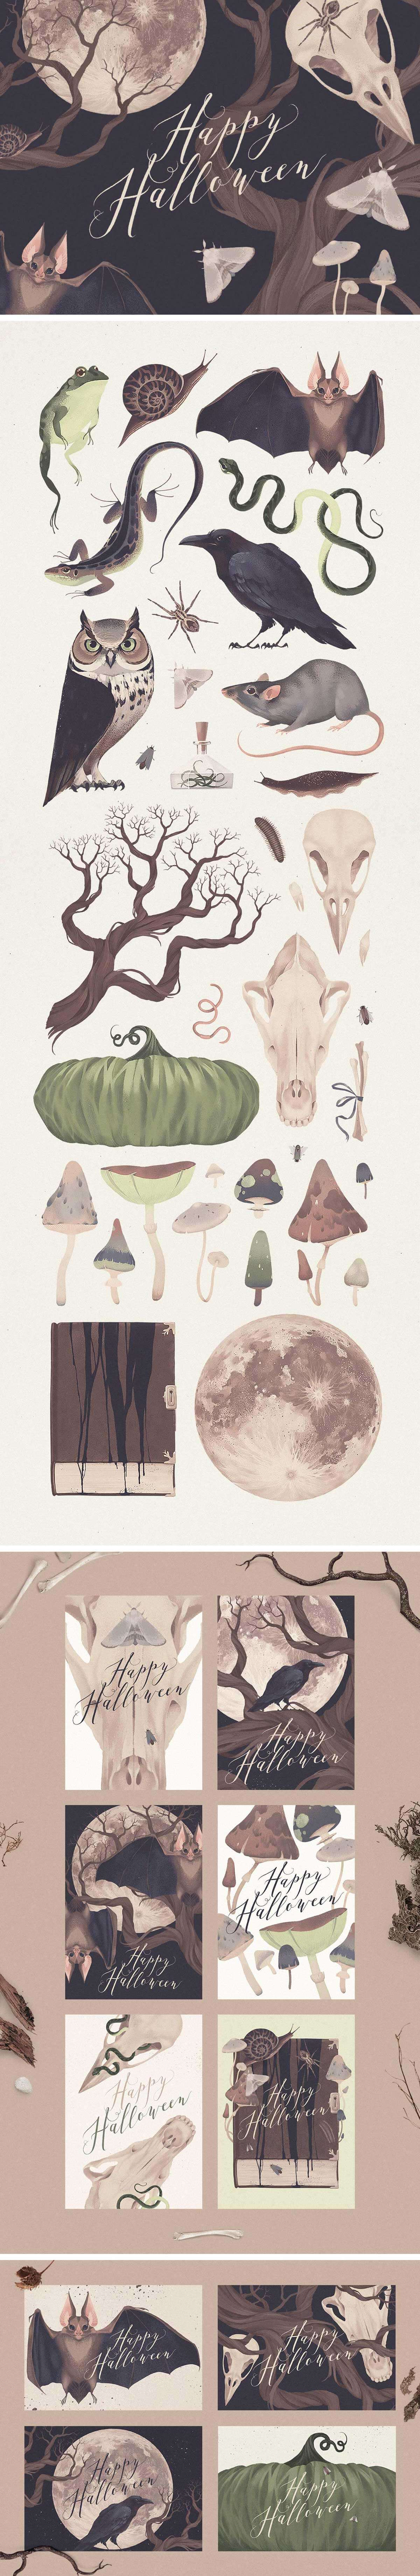 Natural Halloween Graphic Set